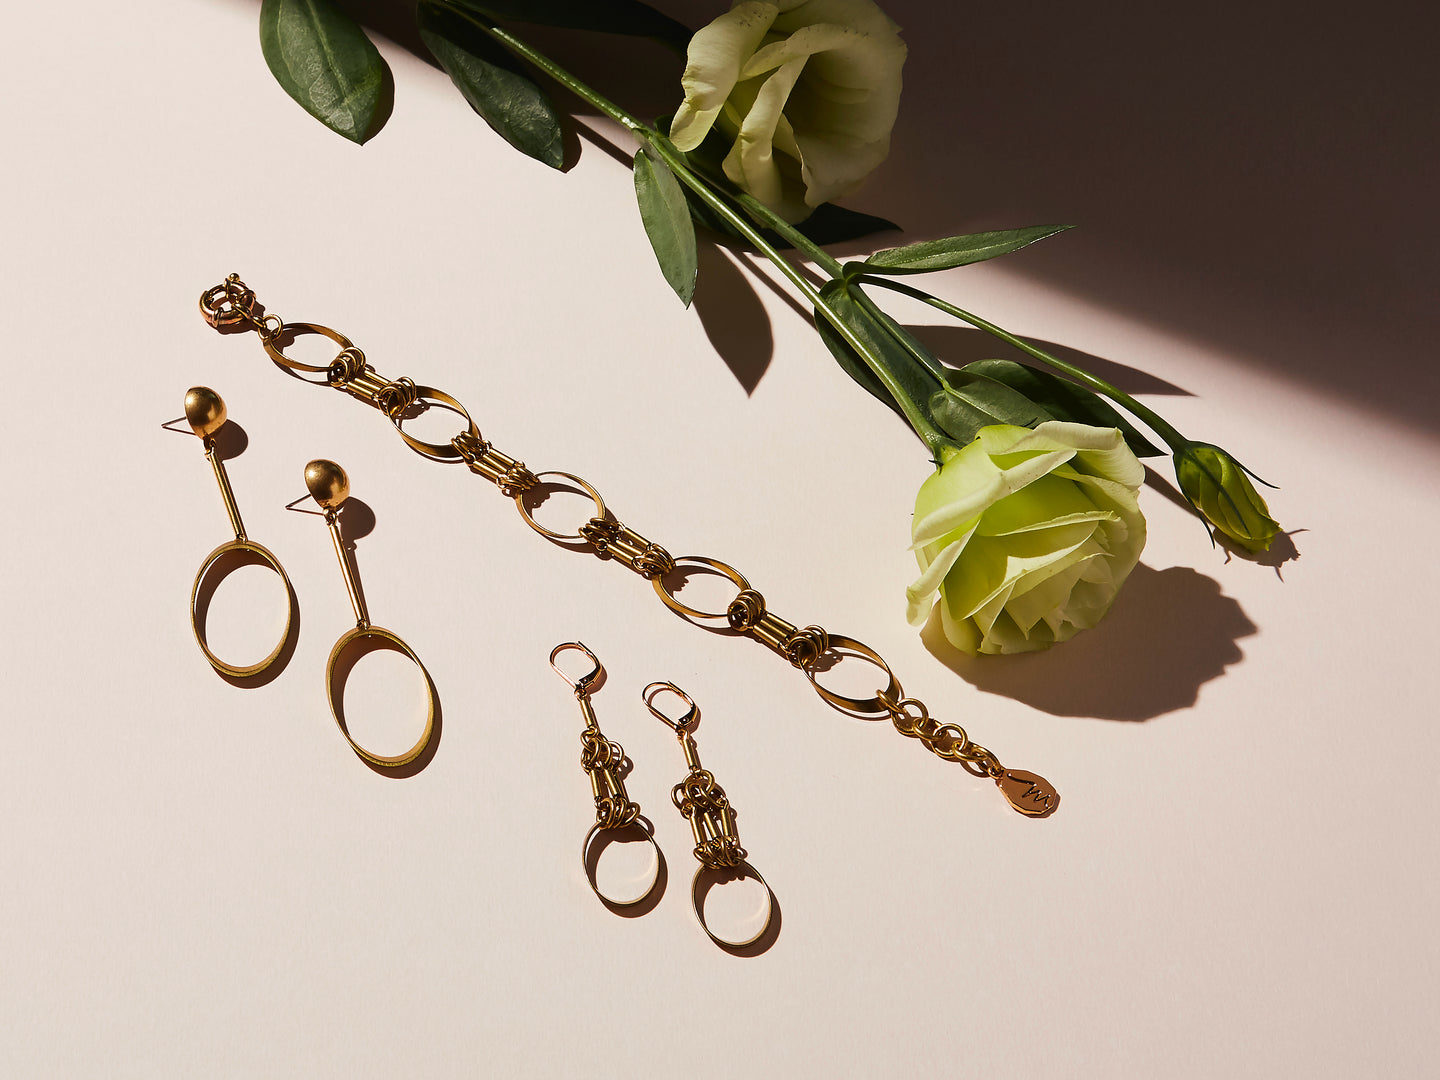 STILL LIFE | MoonRox Jewellery & Accessories Collection for Fall/Winter 2020. Muse Bracelet, Stud Earrings and Earrings with brass ovals and rods.